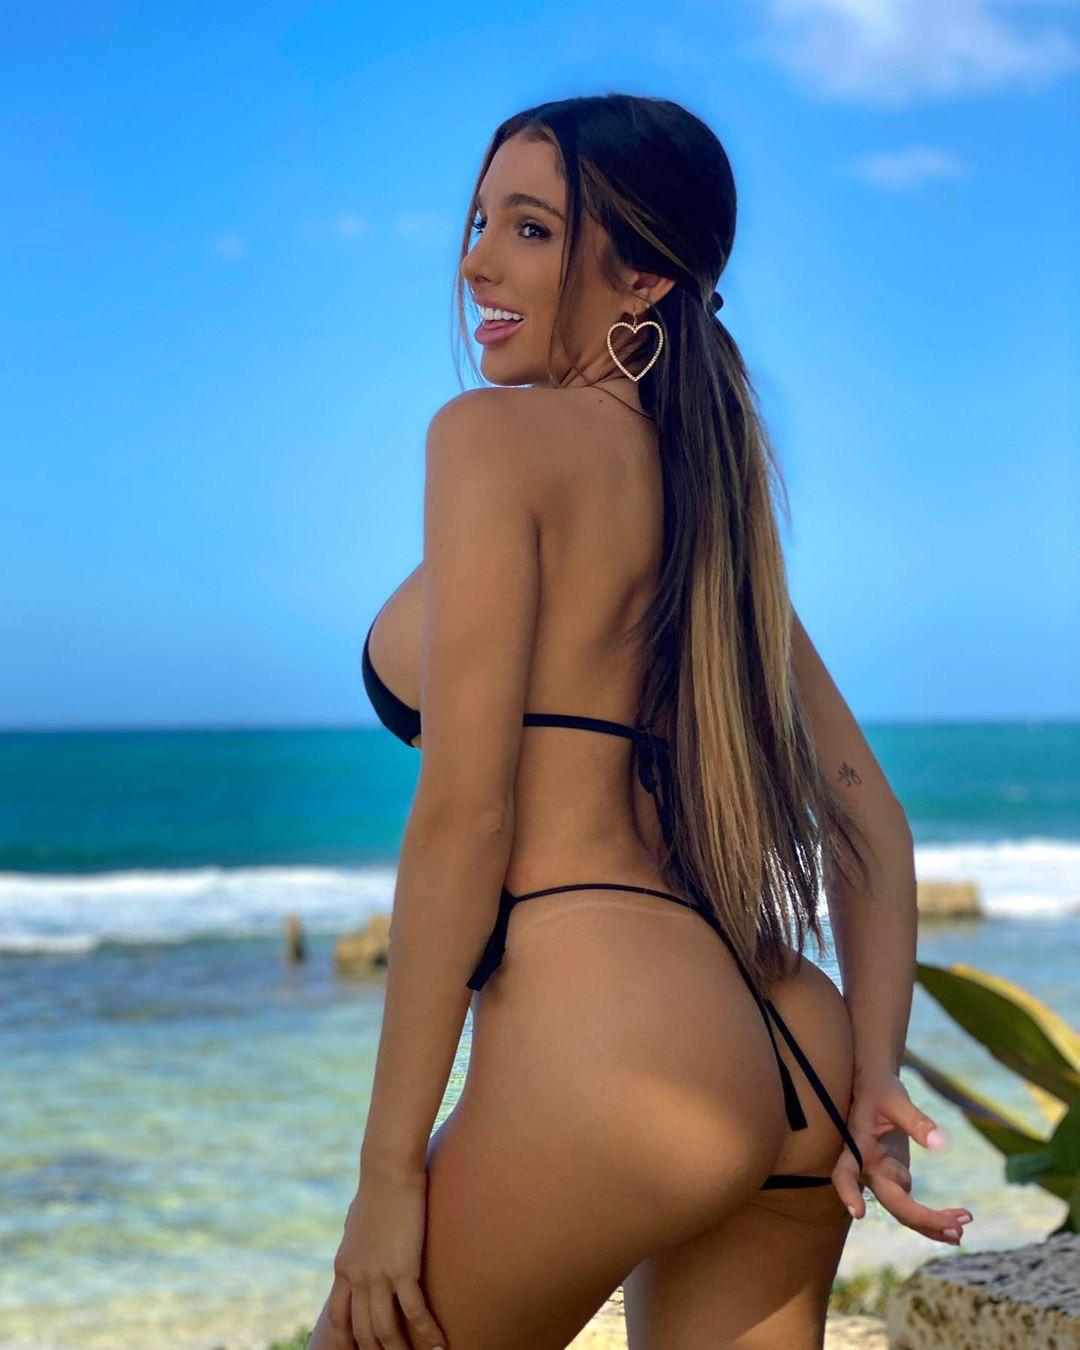 Sexy Instagram model Lyna Perez hot nude photos leaked